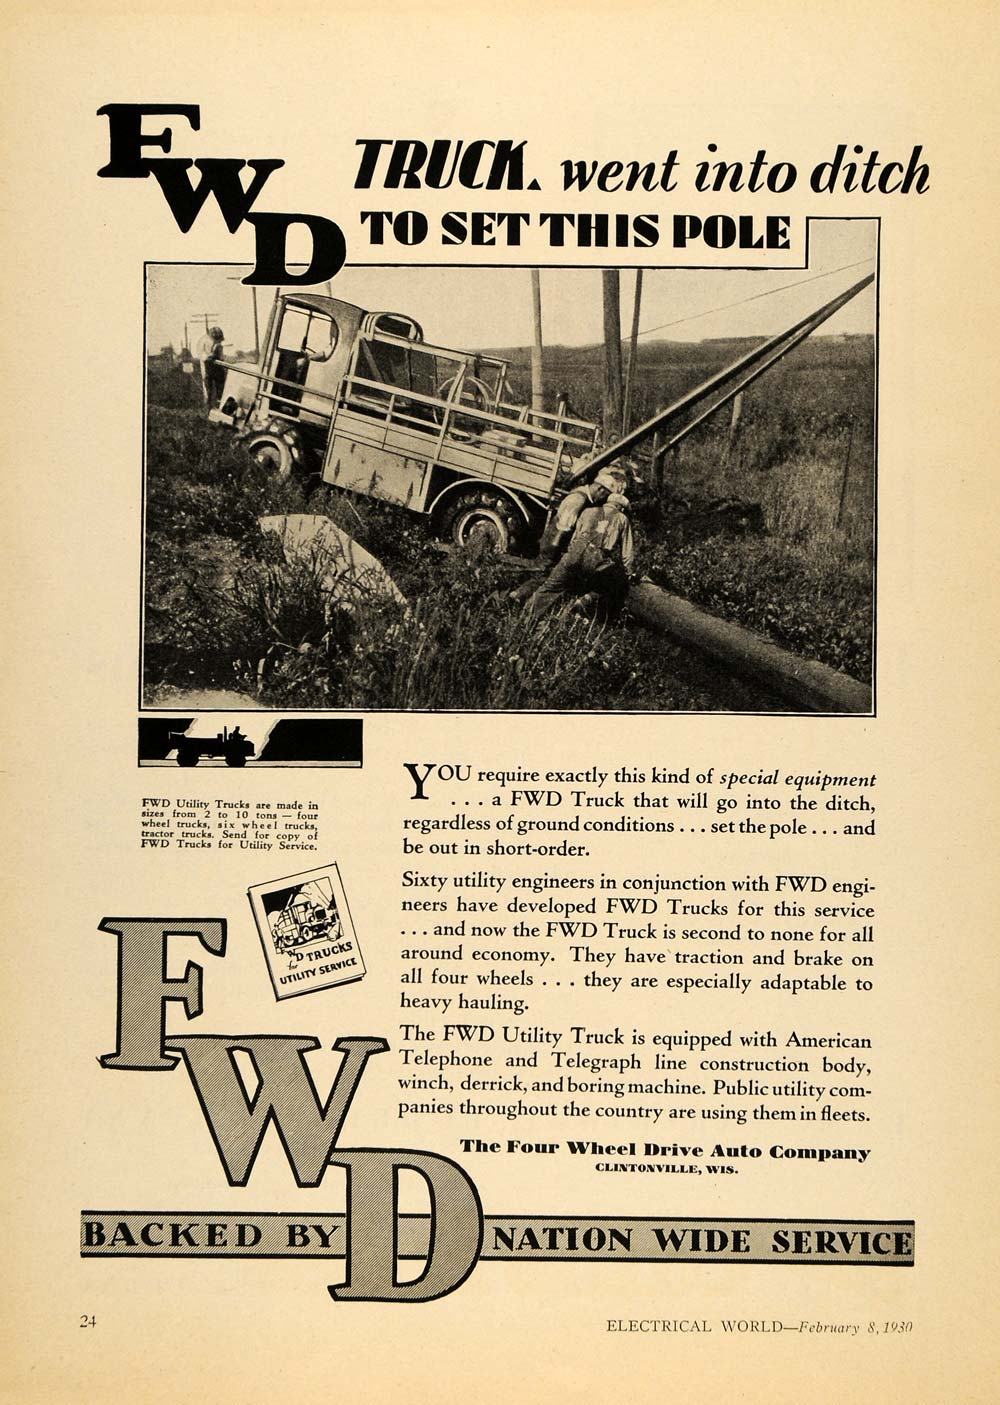 1930 Ad Four Wheel Drive Auto Co. FWD Industrial Truck - ORIGINAL ELC1